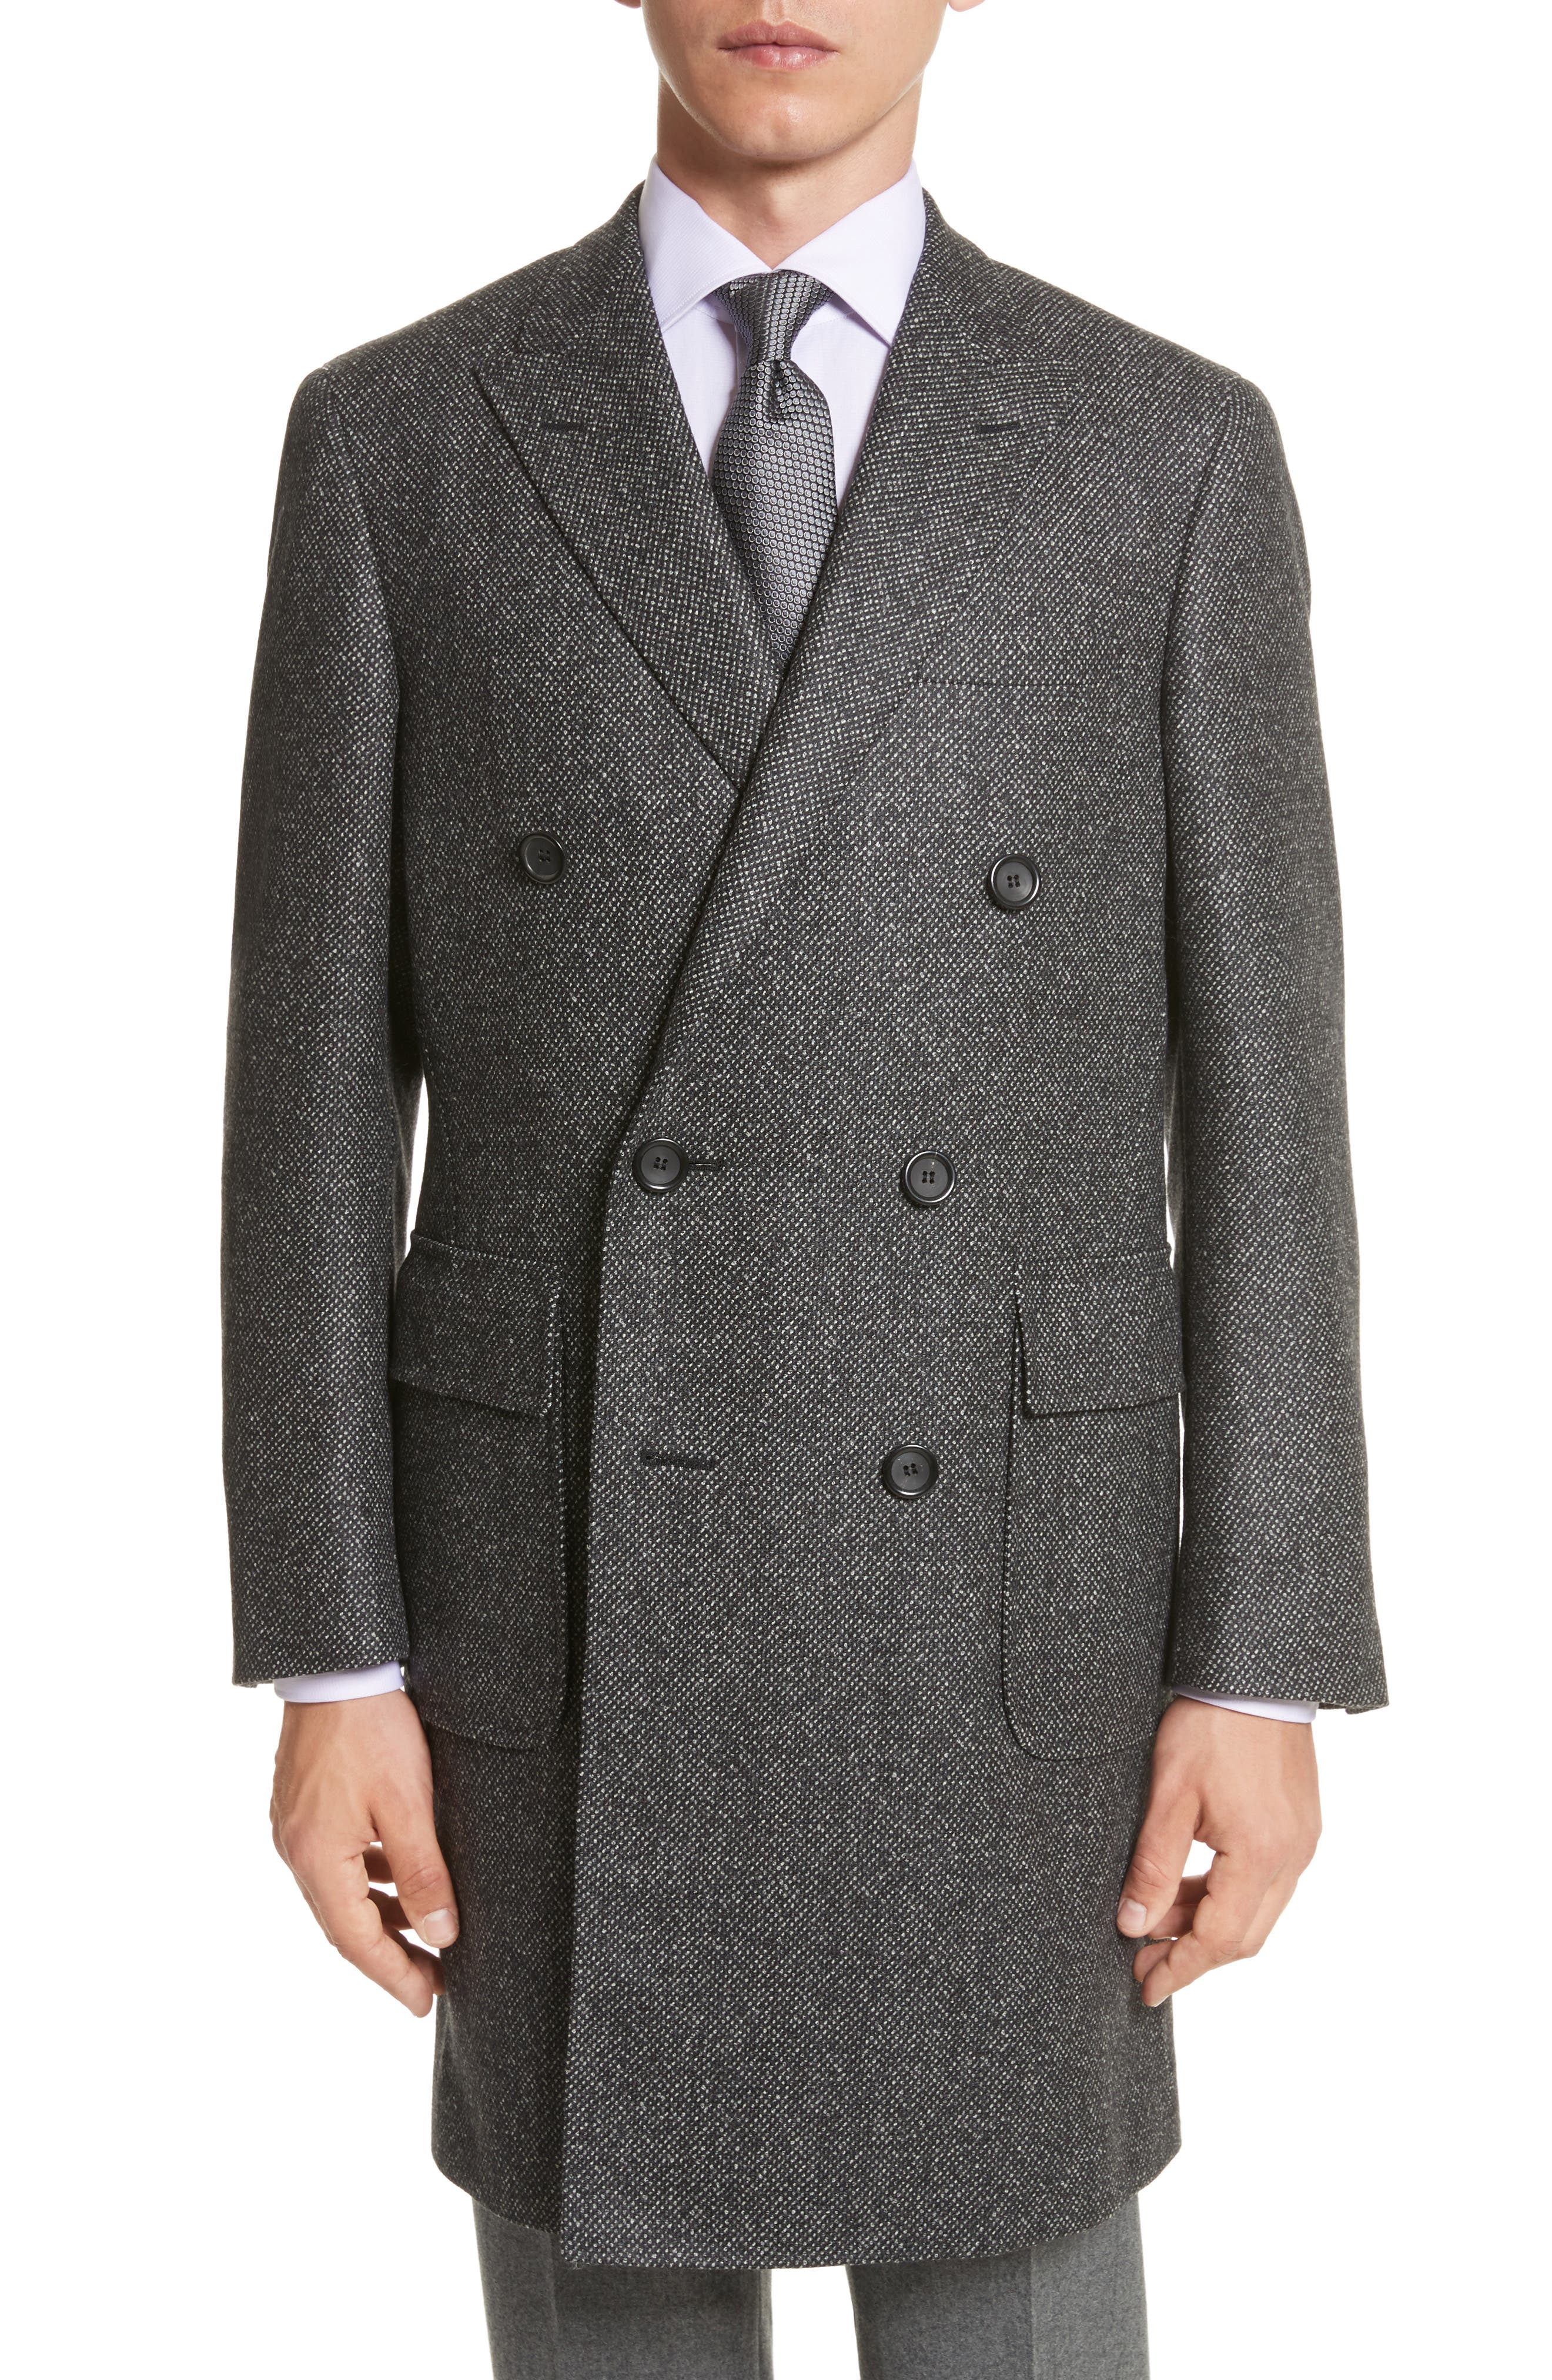 Main Image - Canali Classic Fit Wool Topcoat